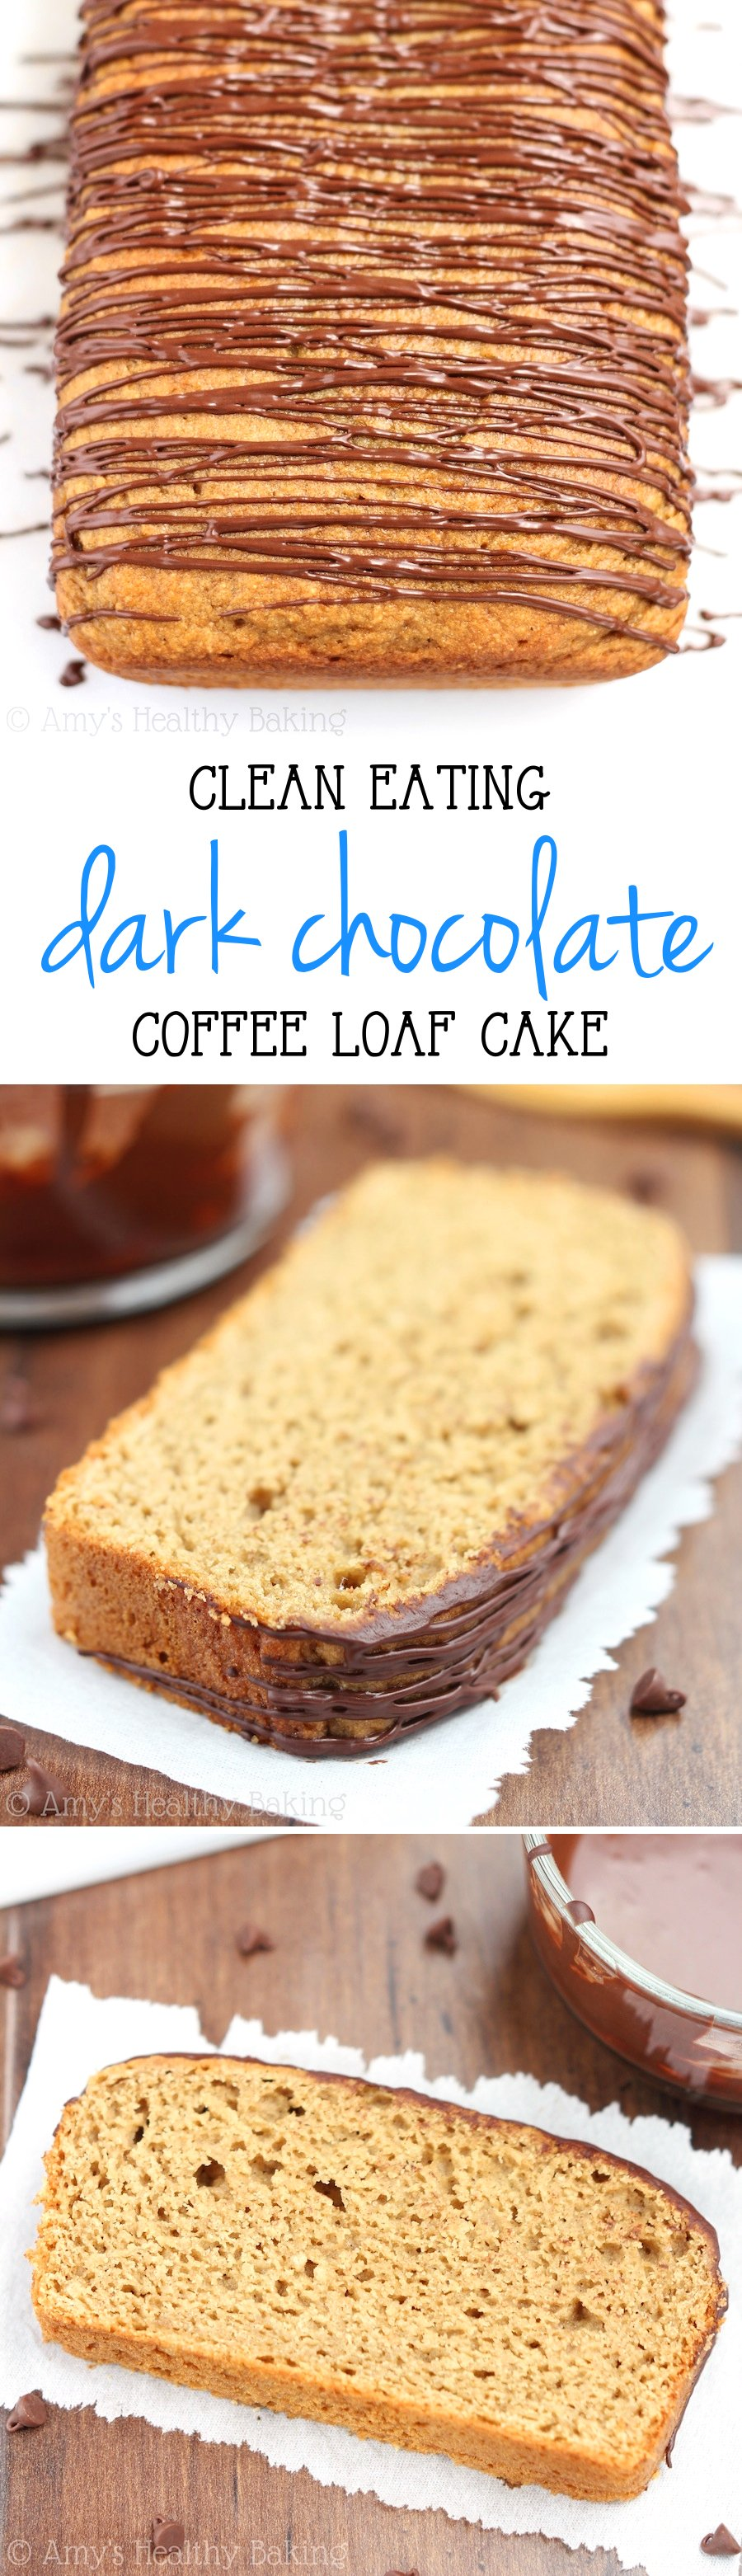 Clean-Eating Coffee Loaf Cake + Dark Chocolate Drizzle -- so easy, no mixer required! You'd never guess it's healthy & under 150 calories!